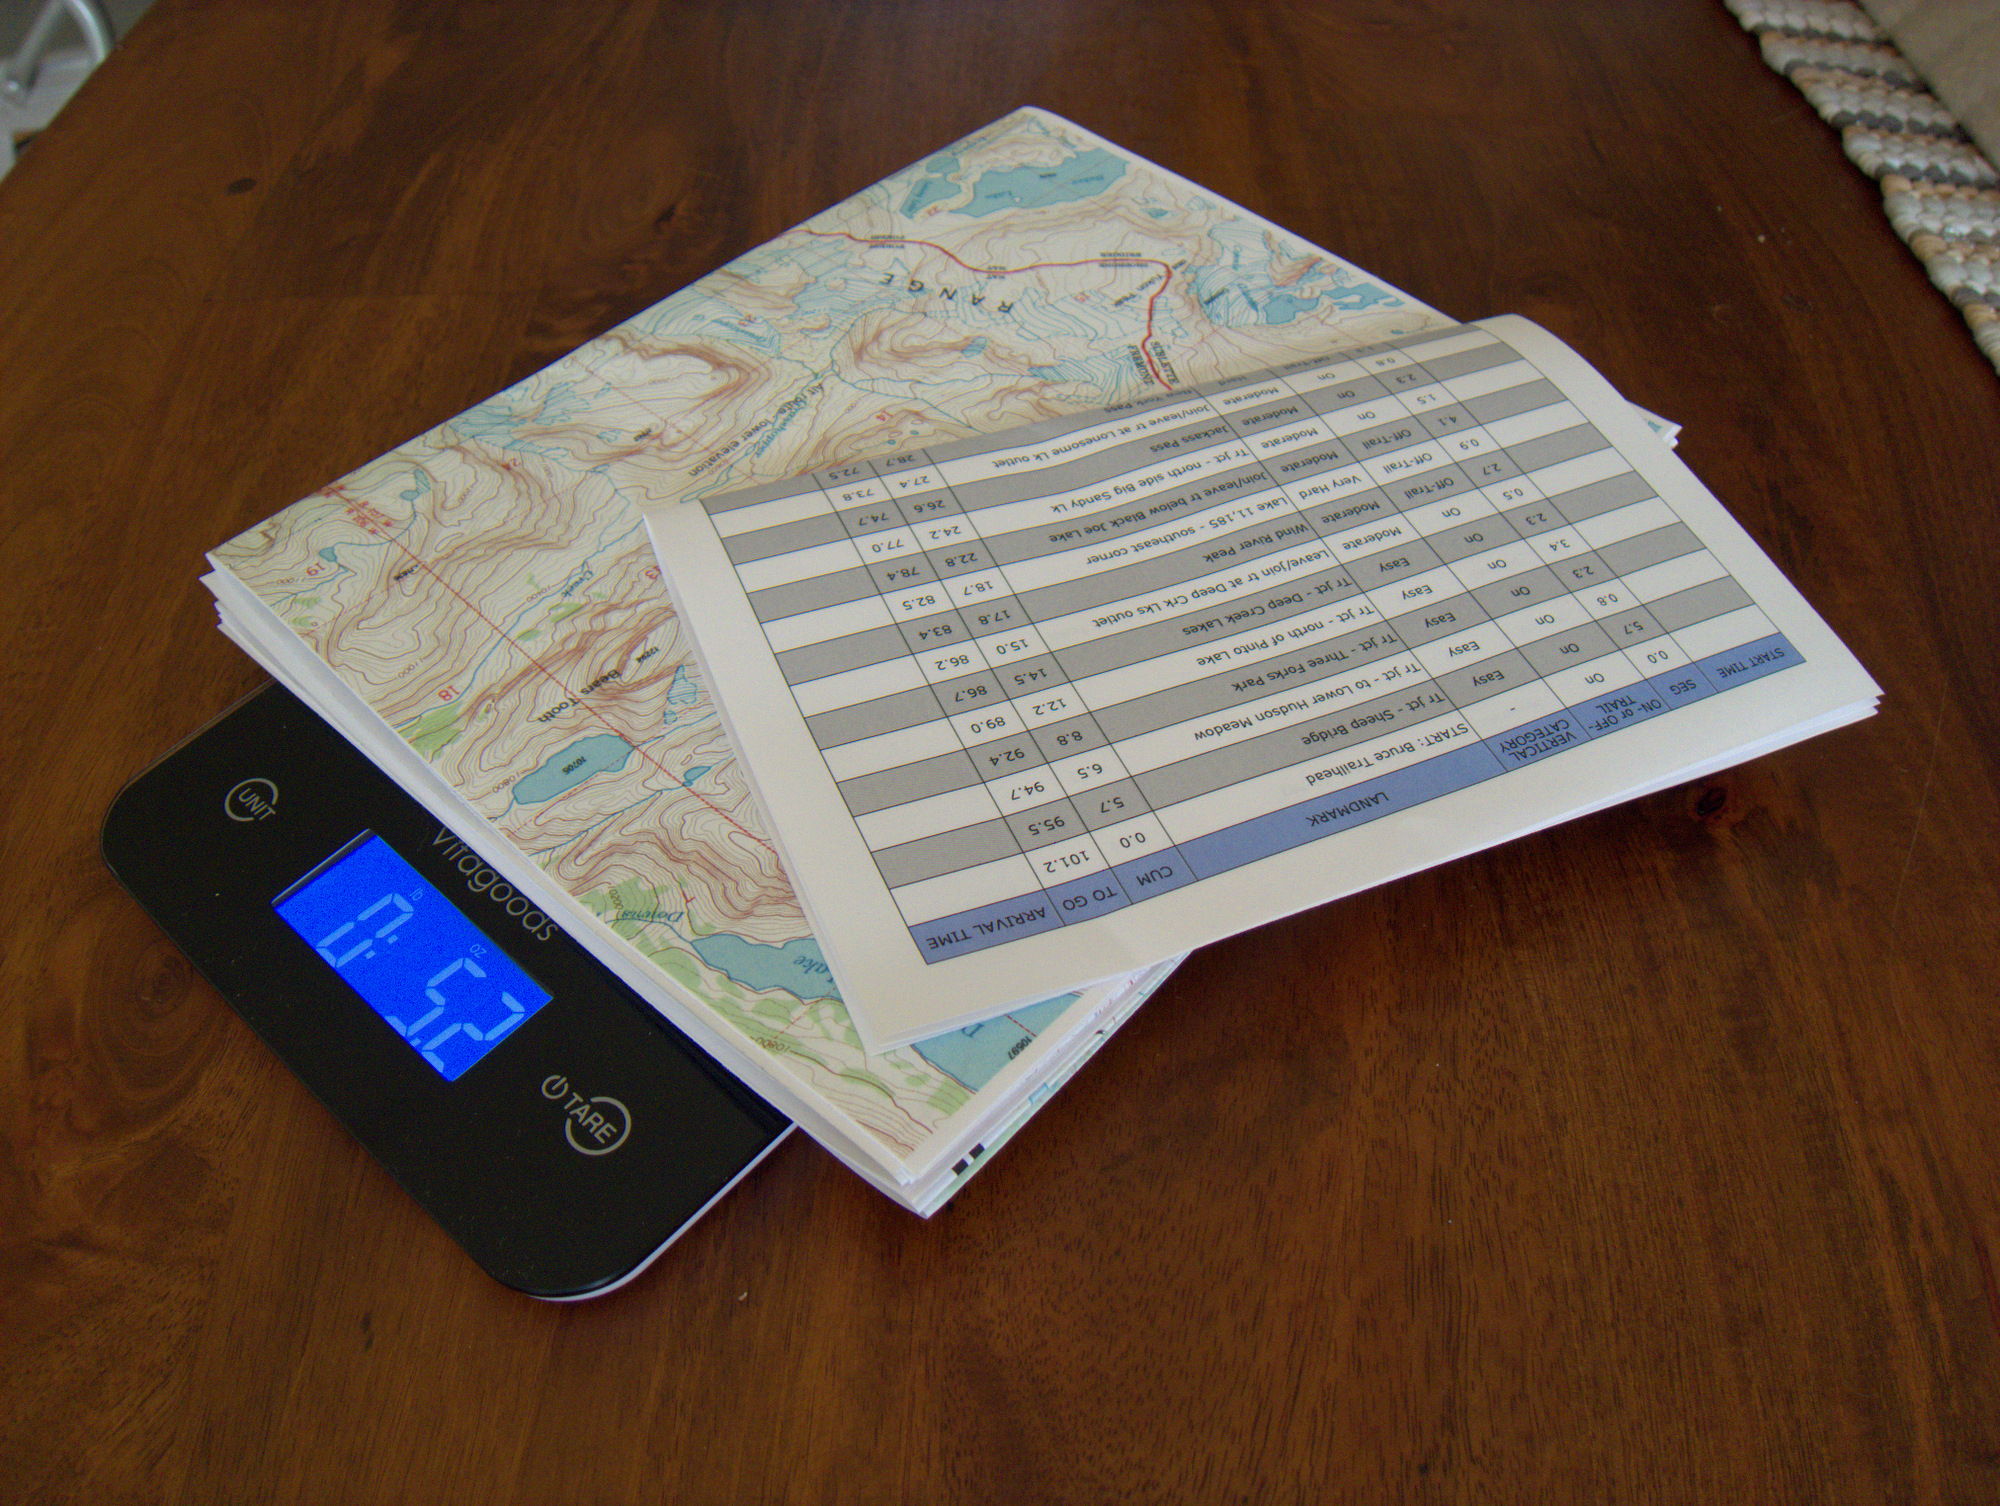 Exporting & Printing Topographical Maps From Digital Sources - Printable Maps By Waterproofpaper Com